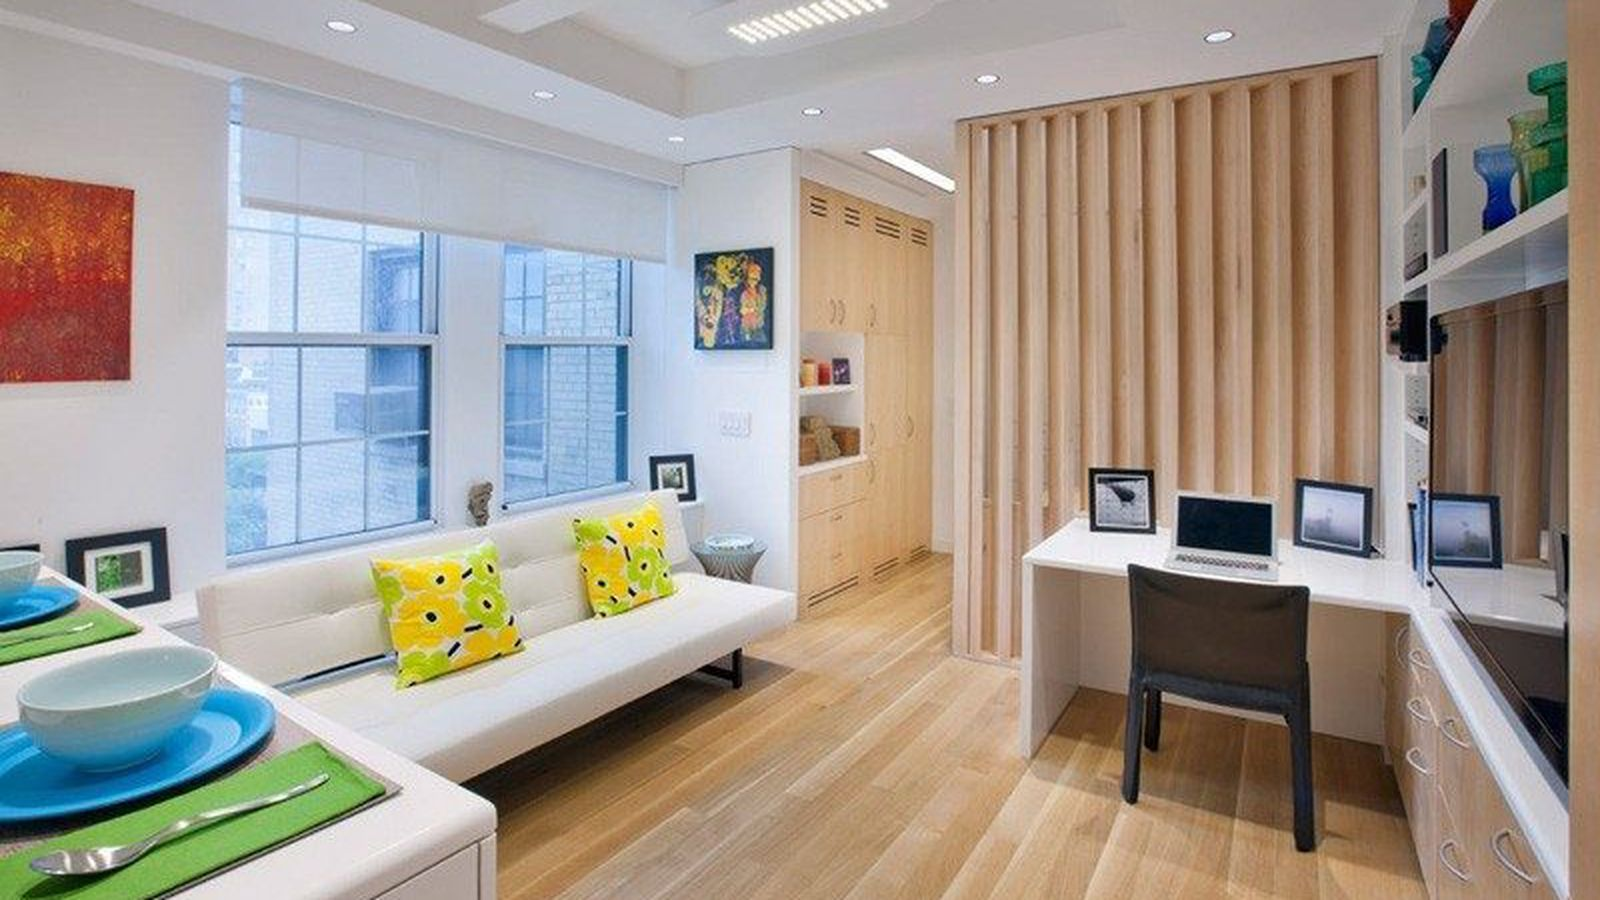 How to fit 5 rooms in a 340 square foot nyc apartment for 11x12 room in square feet